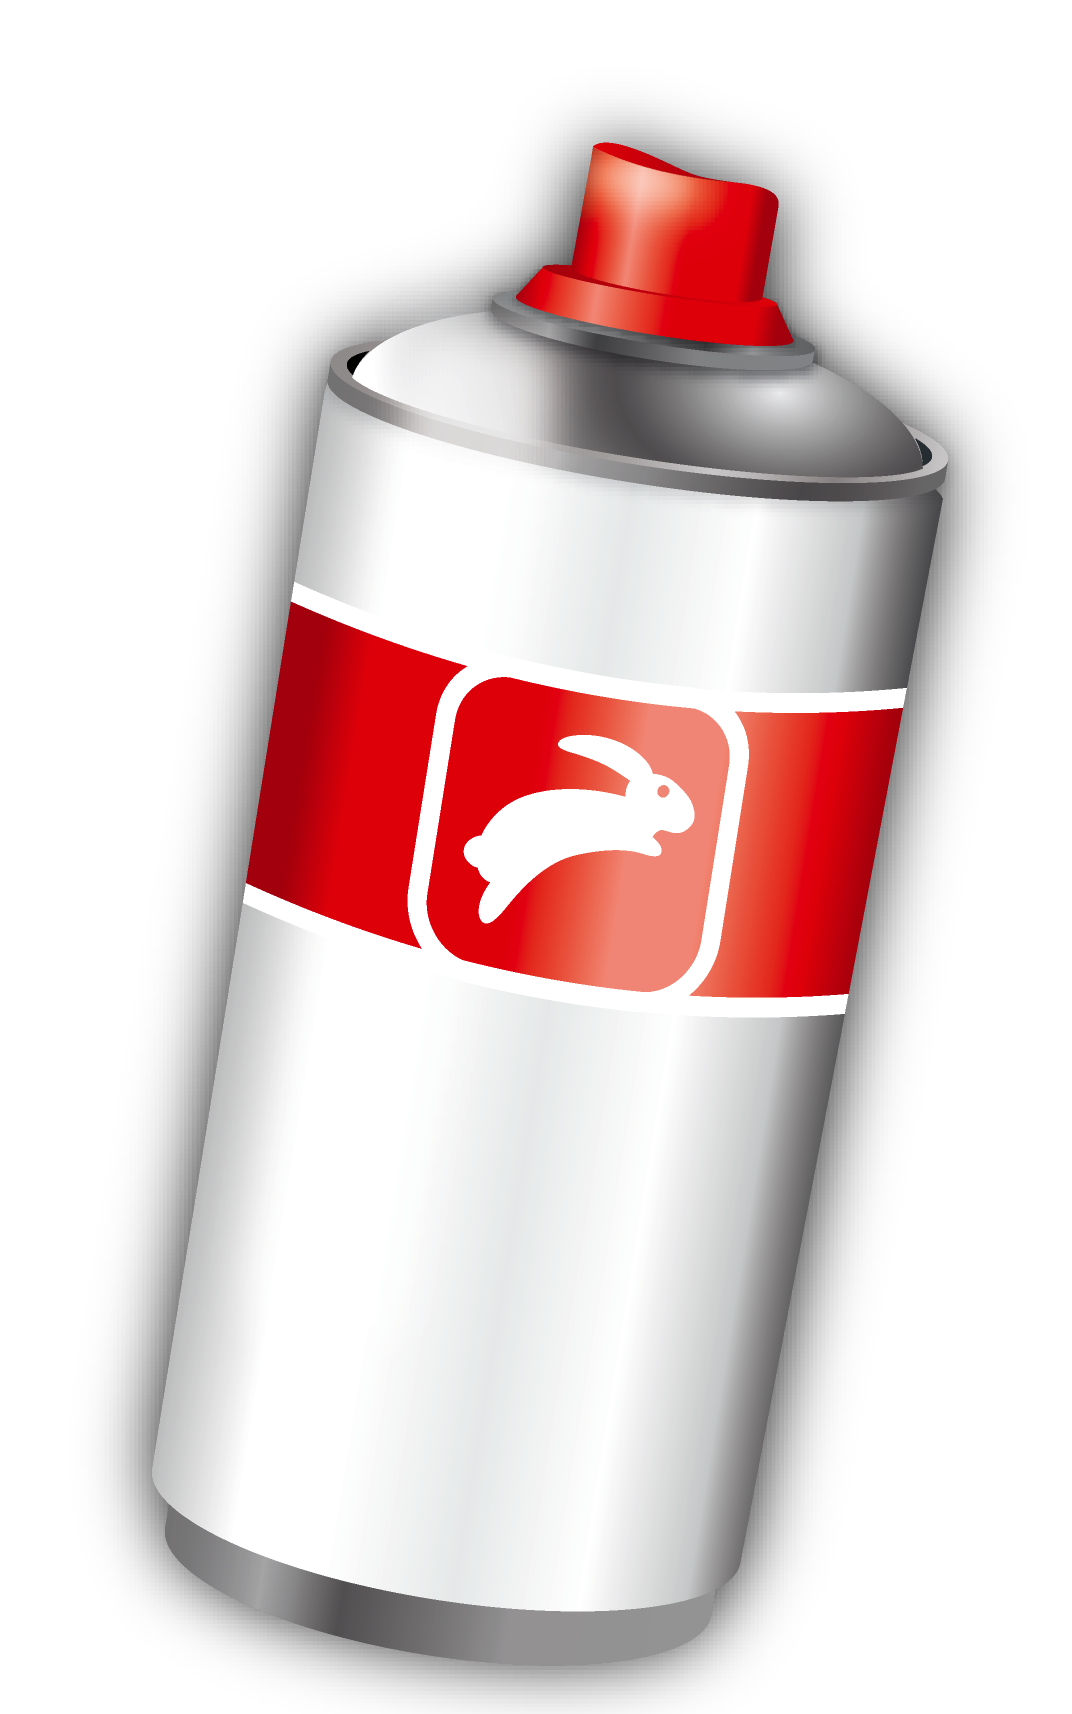 PNG Spray Can Image image #28857